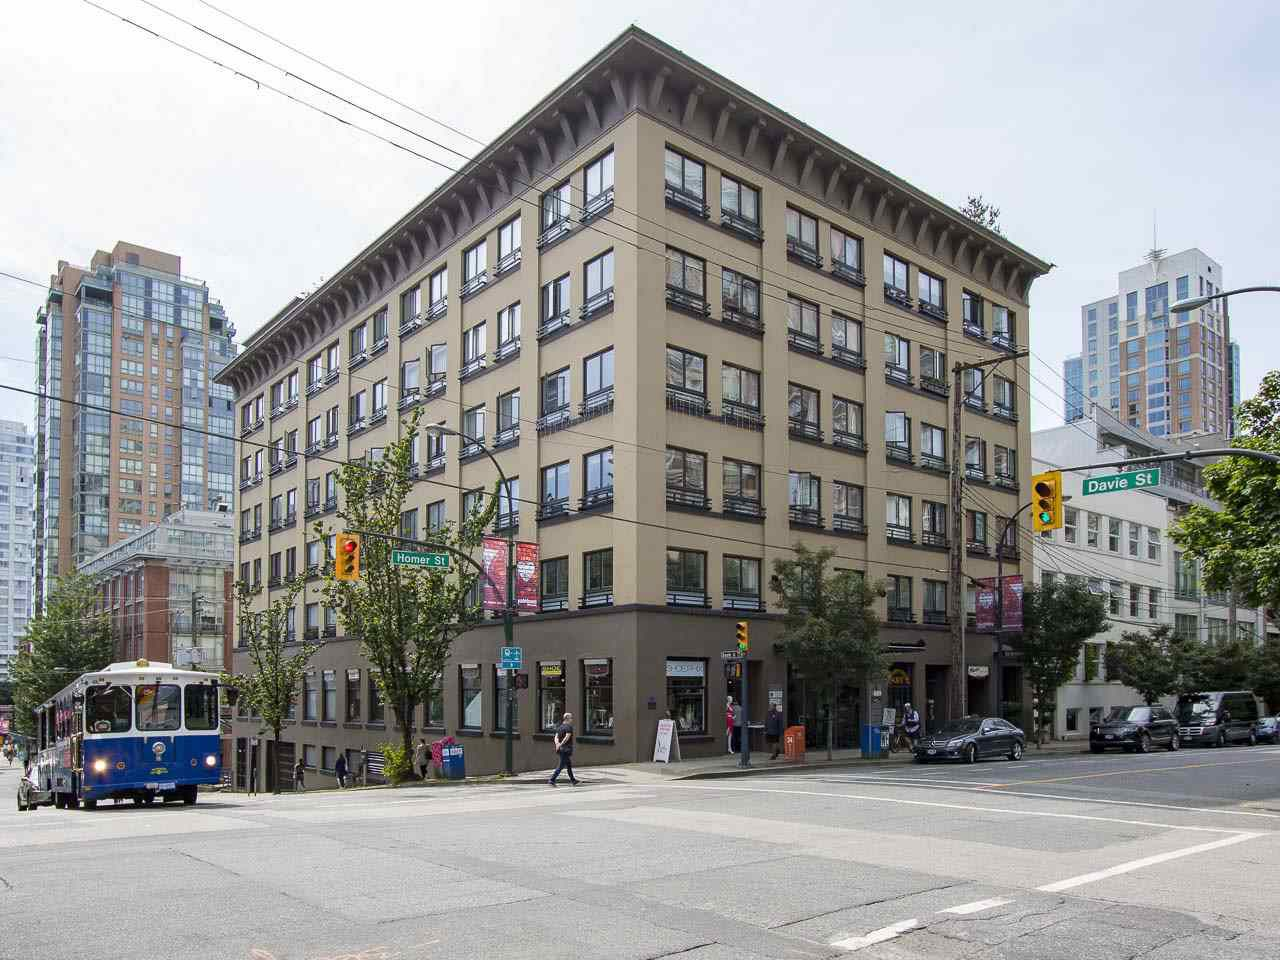 """Main Photo: 411 1216 HOMER Street in Vancouver: Yaletown Condo for sale in """"Murchies Building"""" (Vancouver West)  : MLS®# R2076567"""